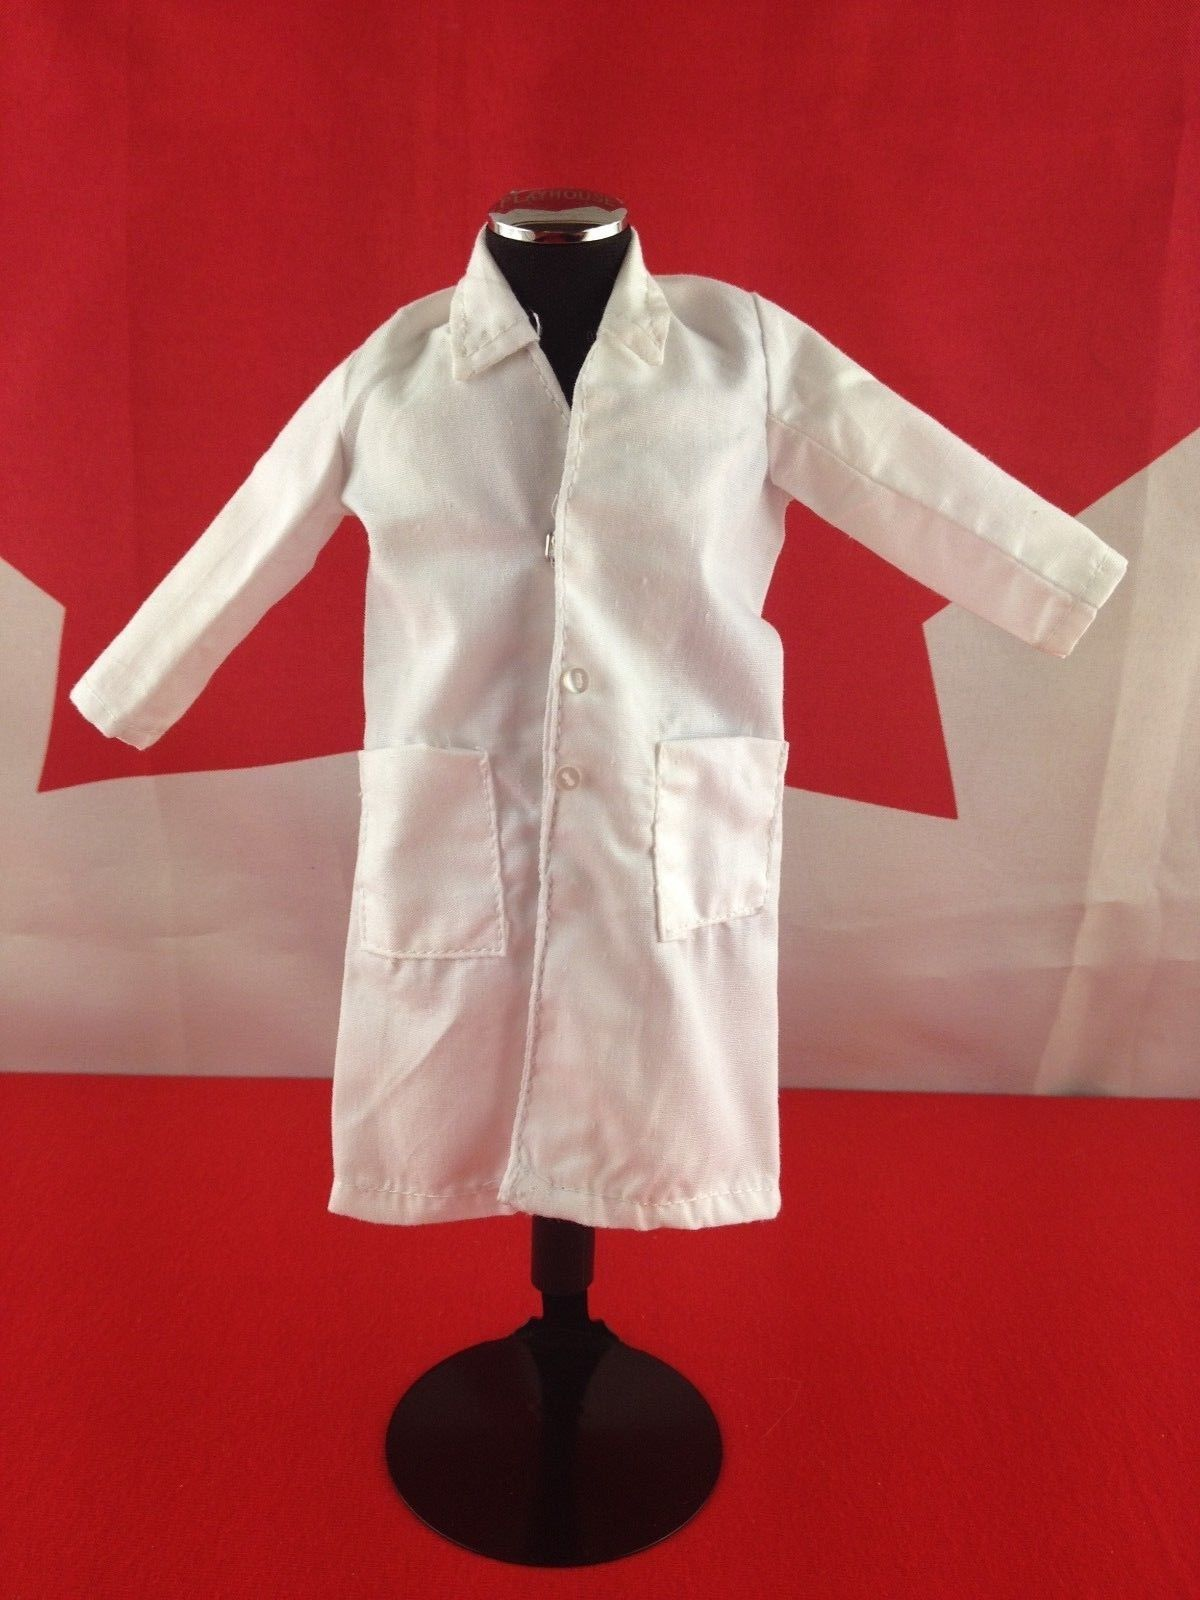 C136 3rd SON Books custom professionally made White Laboratory Coat